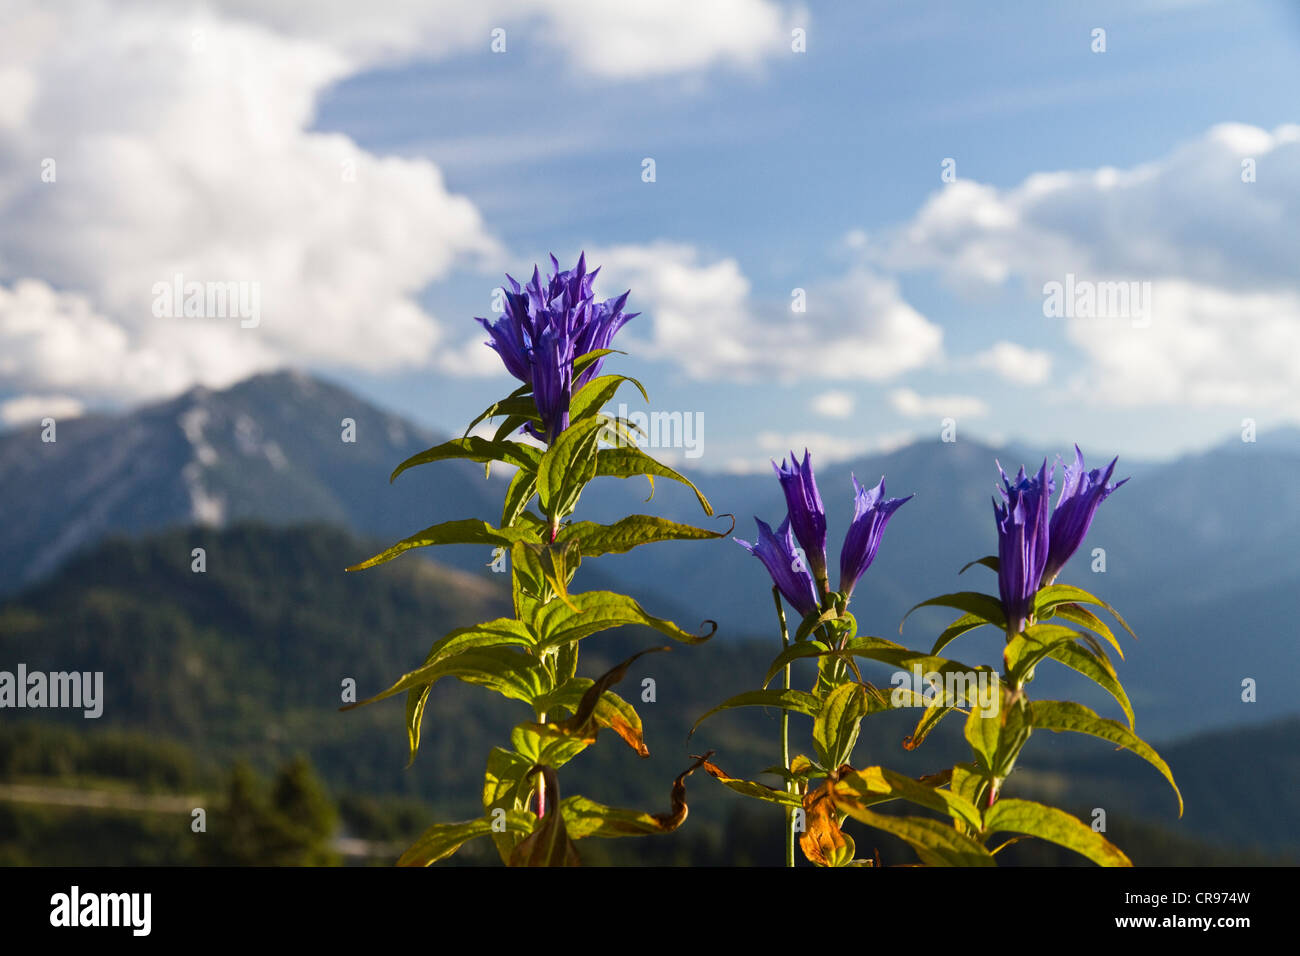 Willow Gentian (Gentiana asclepiadea), Alps, Austria, Europe - Stock Image